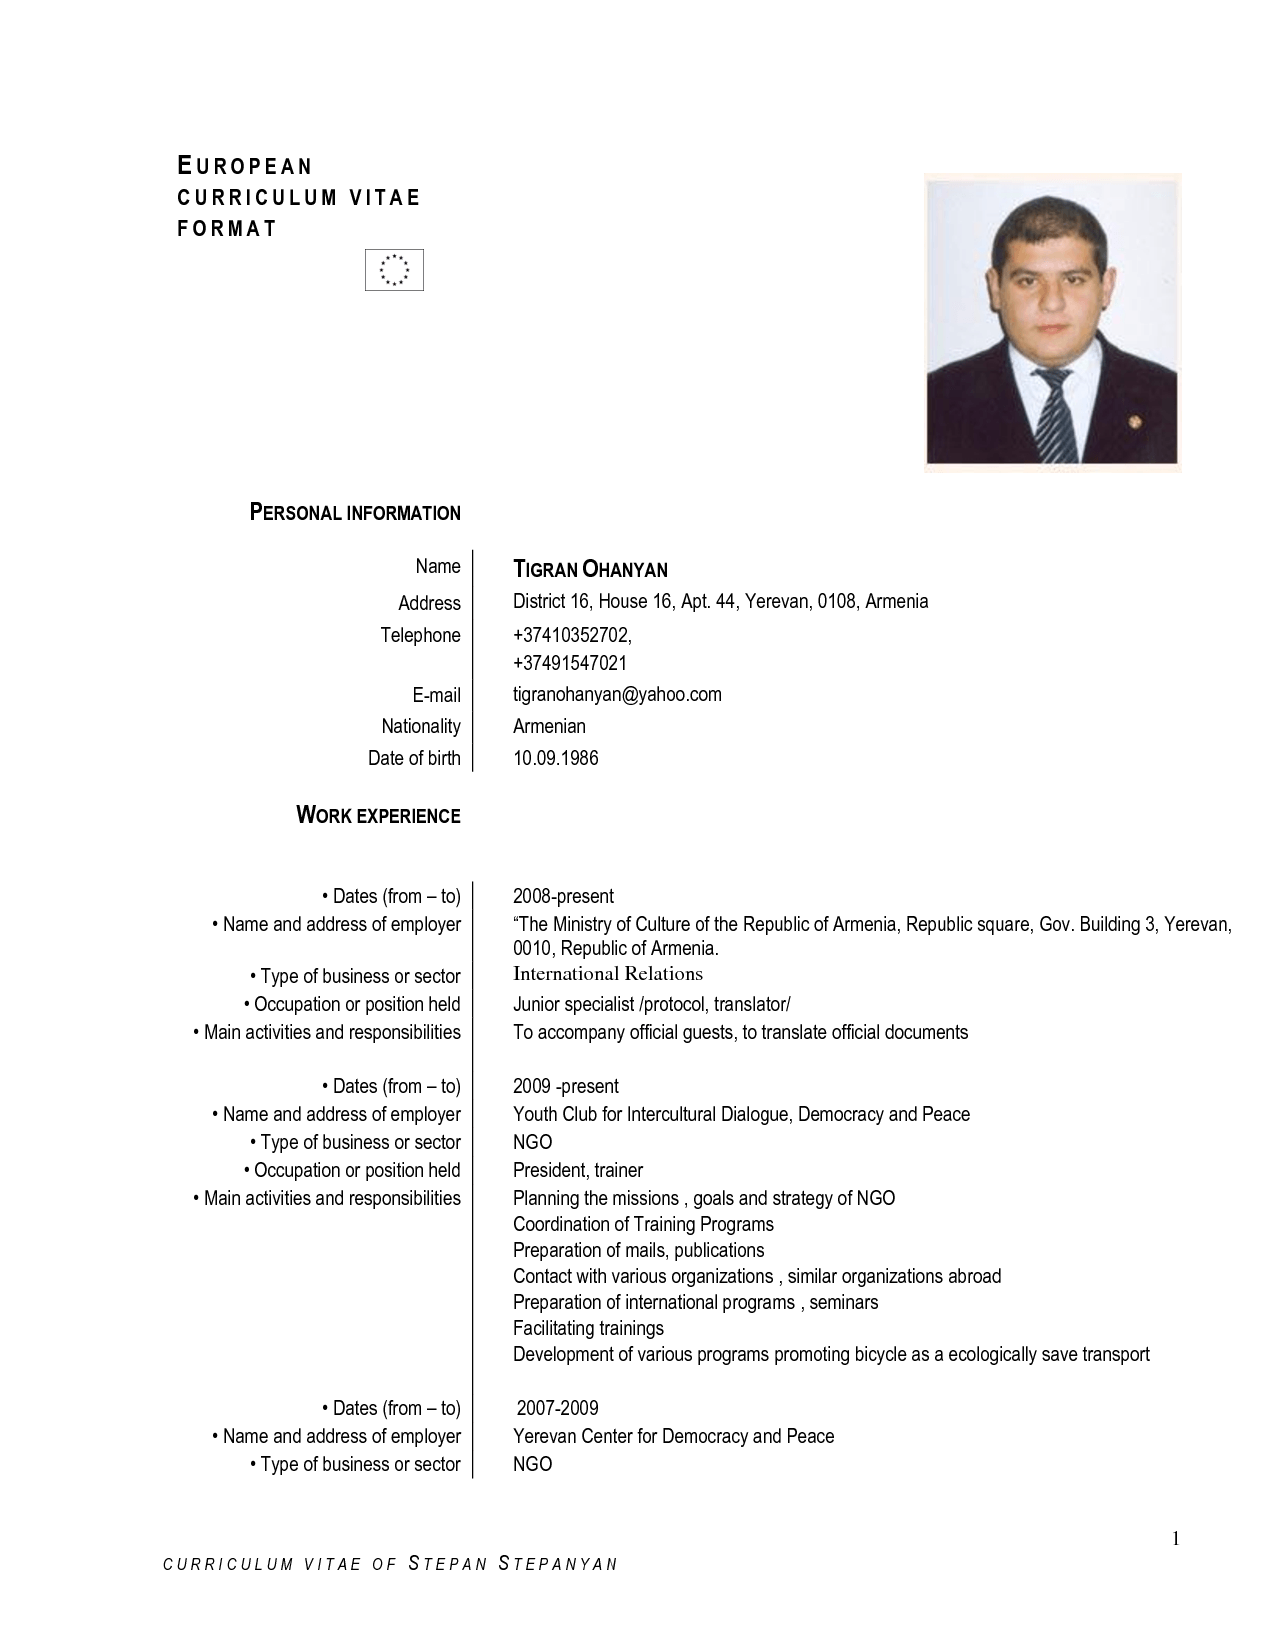 europass cv example english doc